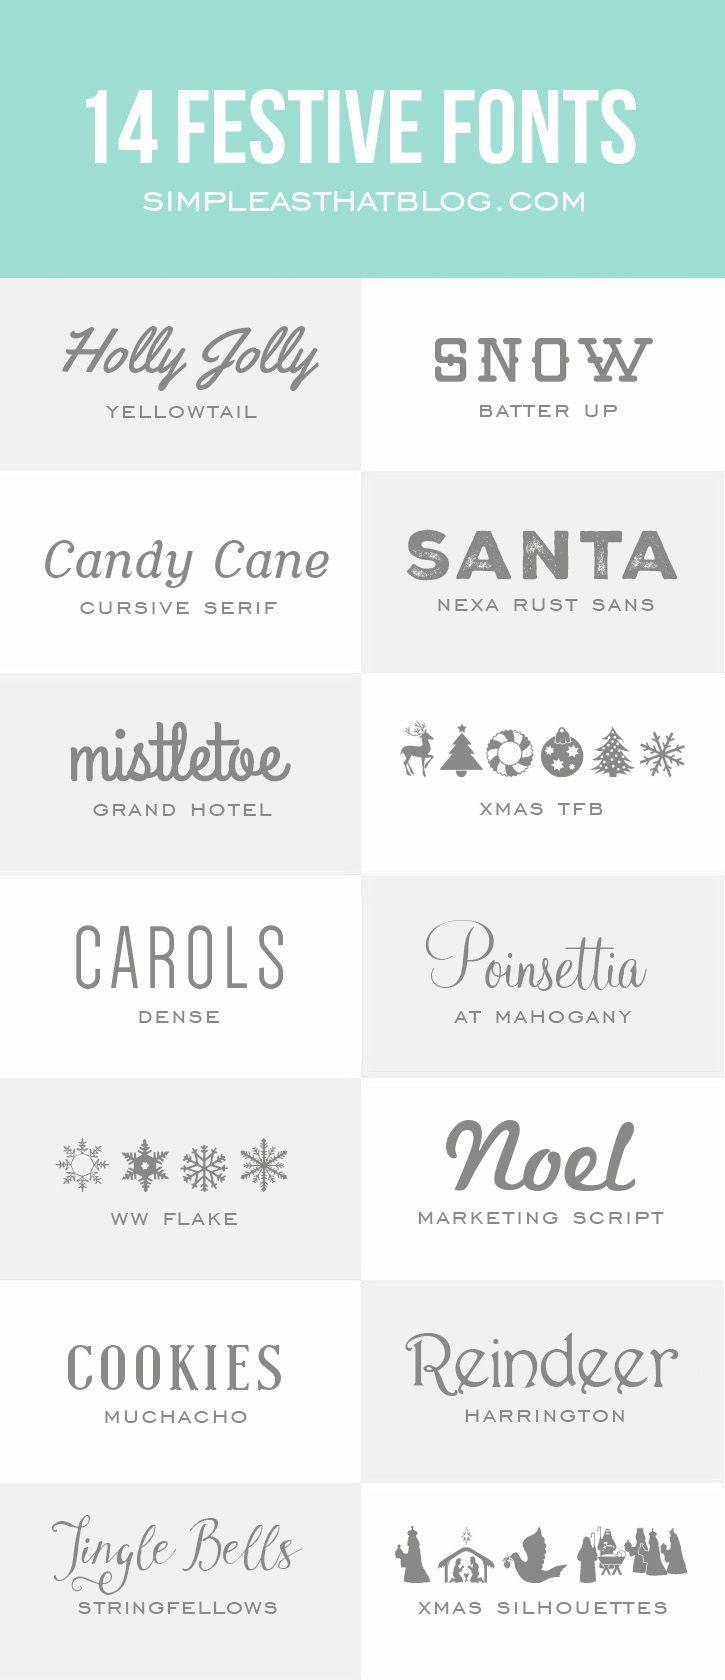 Best Christmas Fonts.14 Festive Fonts For The Holidays Fonts Design